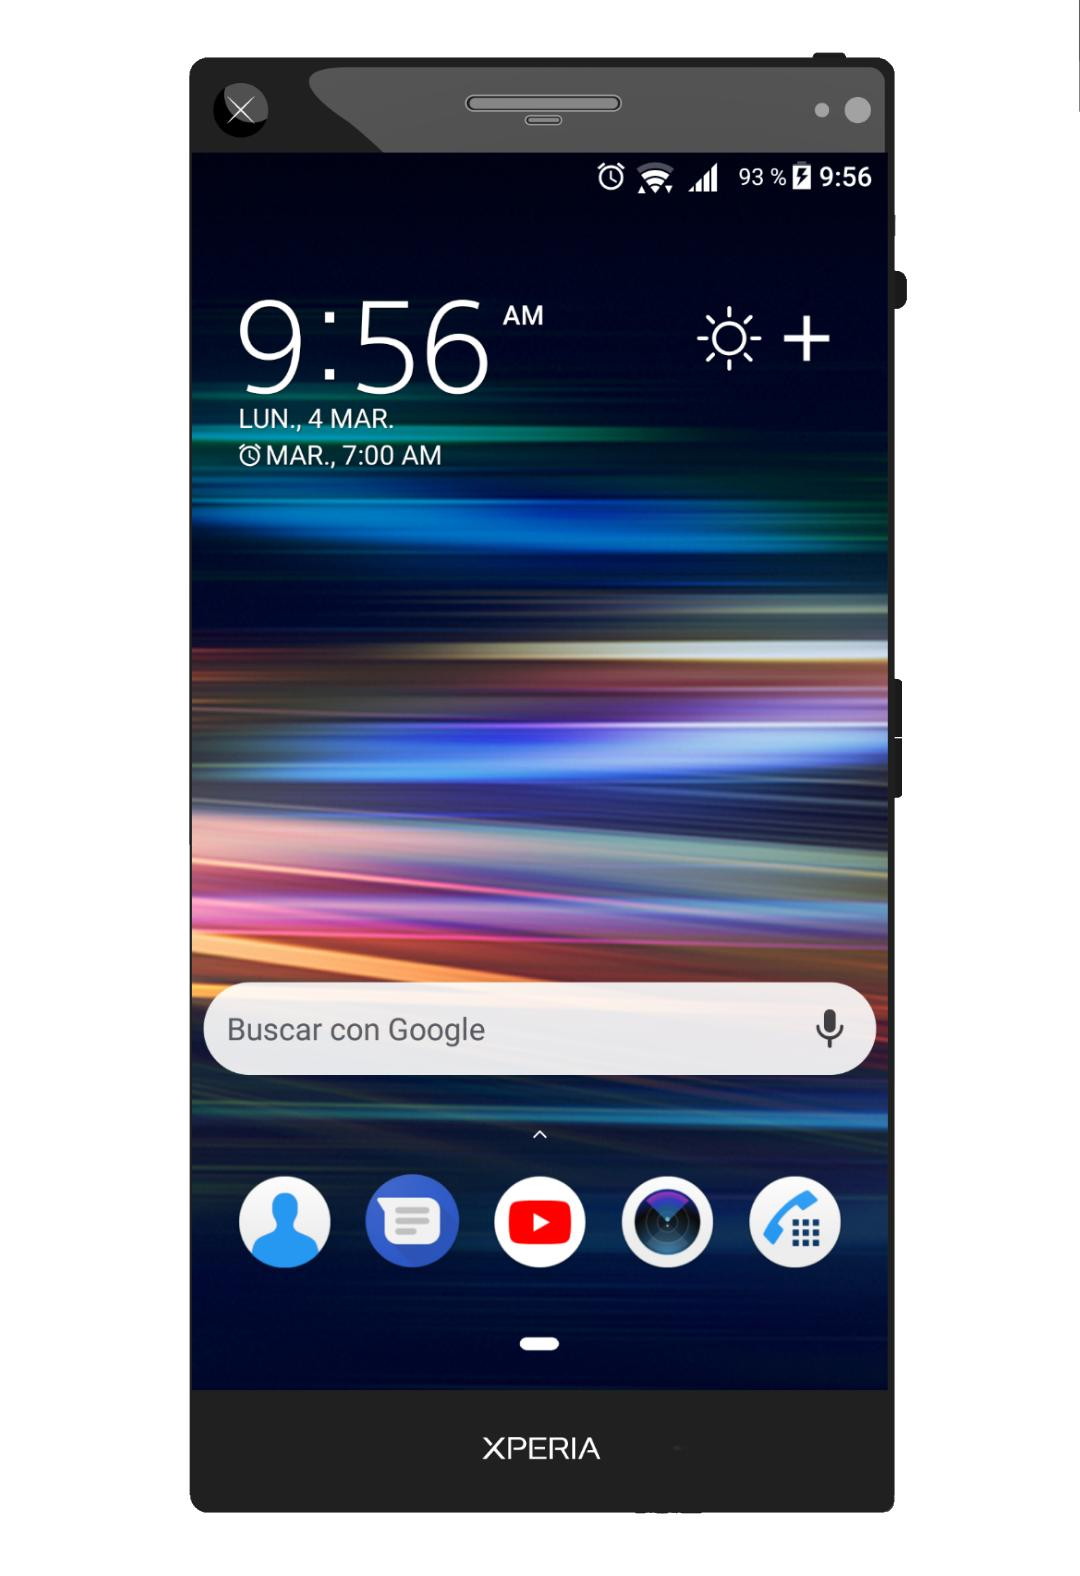 Tema-SXP Xperia 1 for Android - APK Download